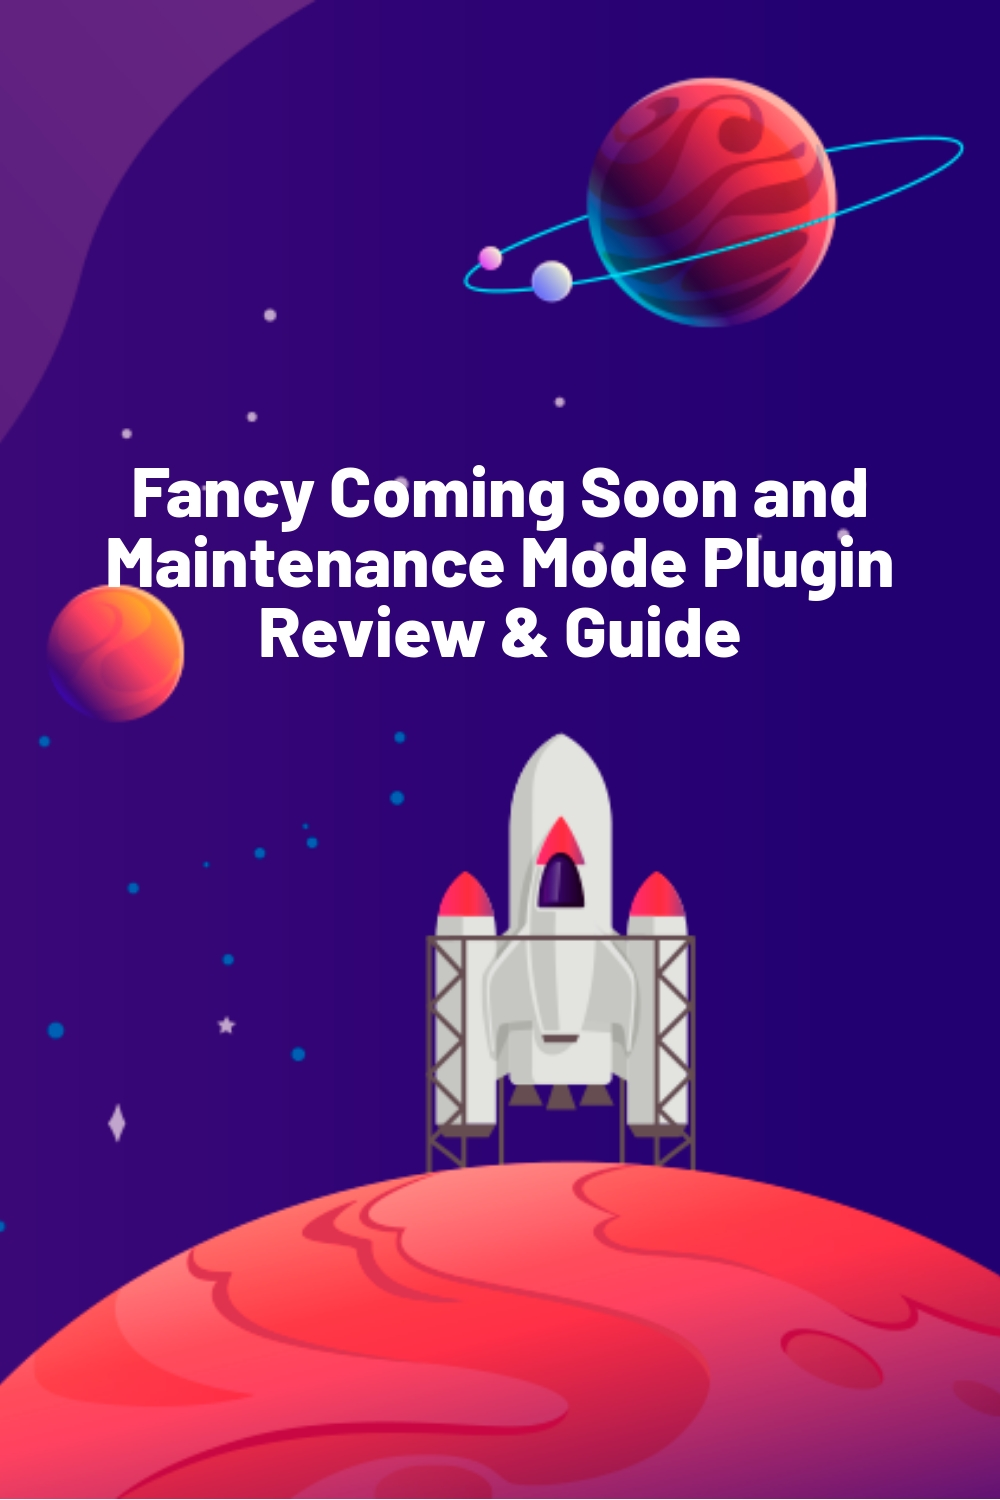 Fancy Coming Soon and Maintenance Mode Plugin Review & Guide